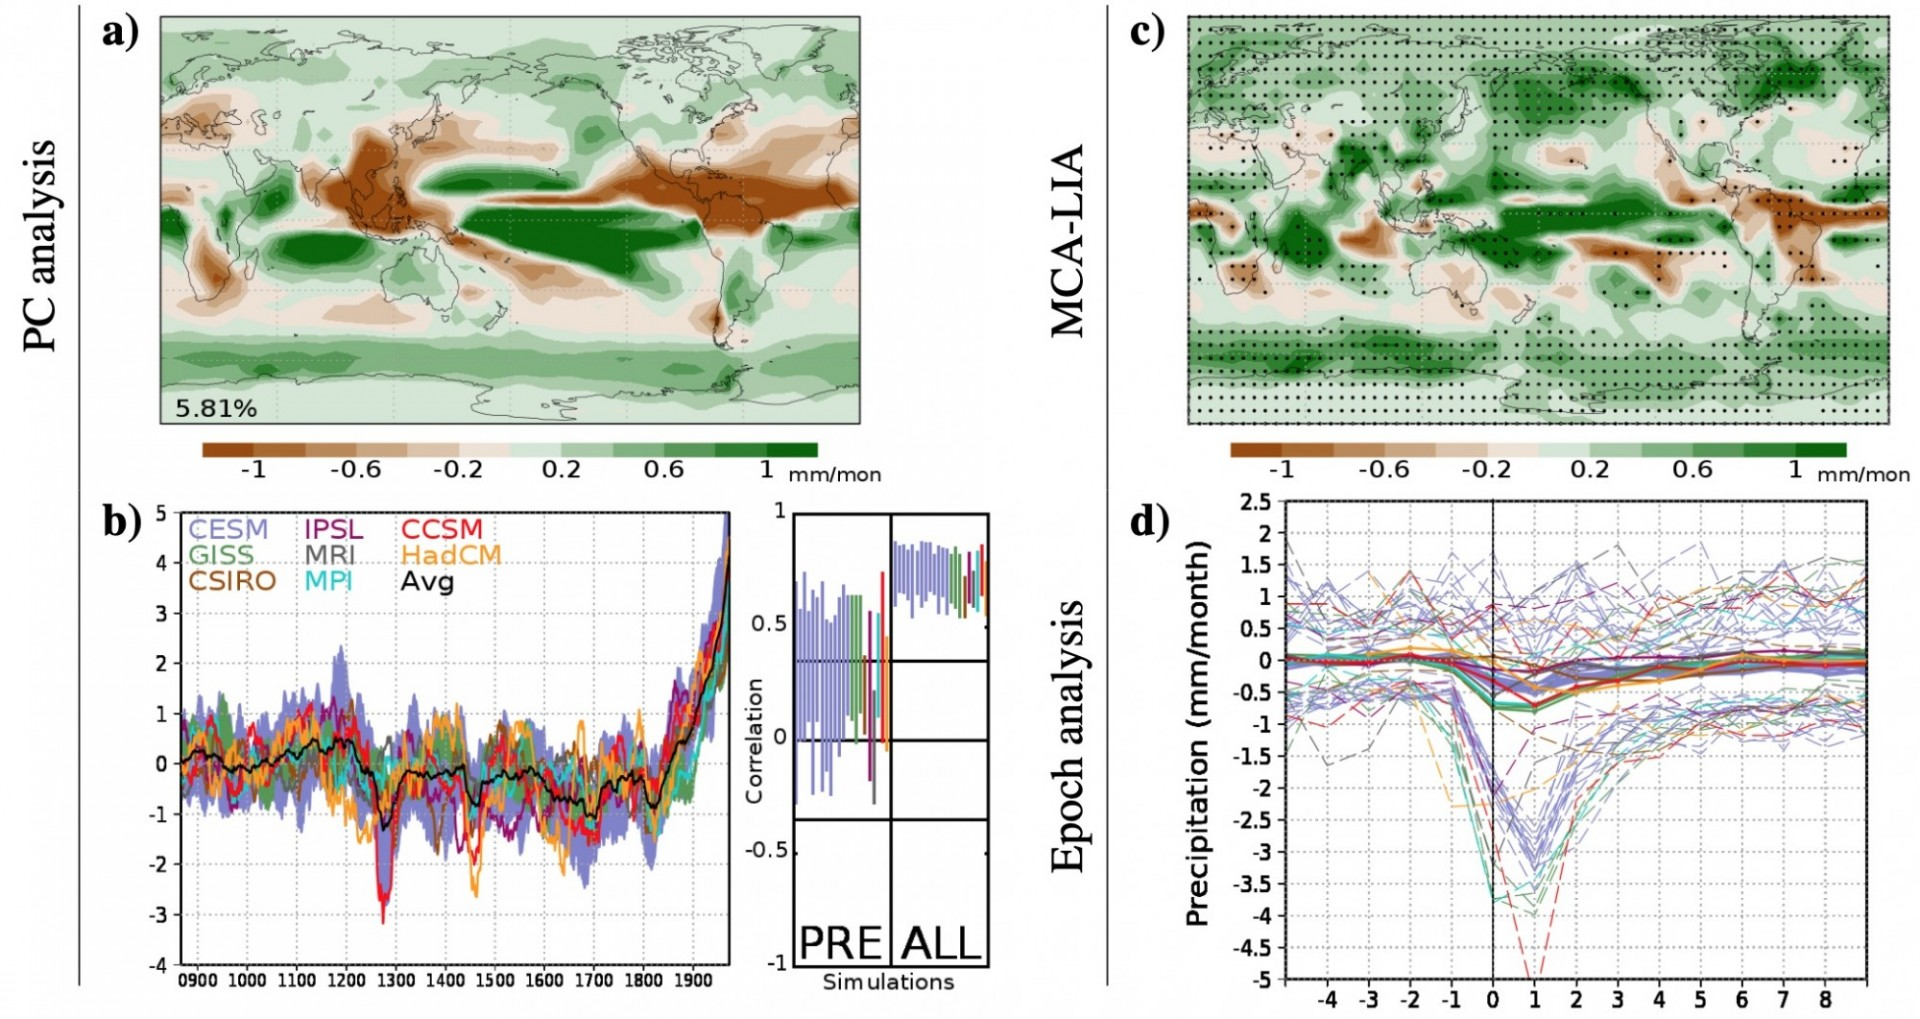 Analysis of precipitation for the PMIP3 ensemble of simulations